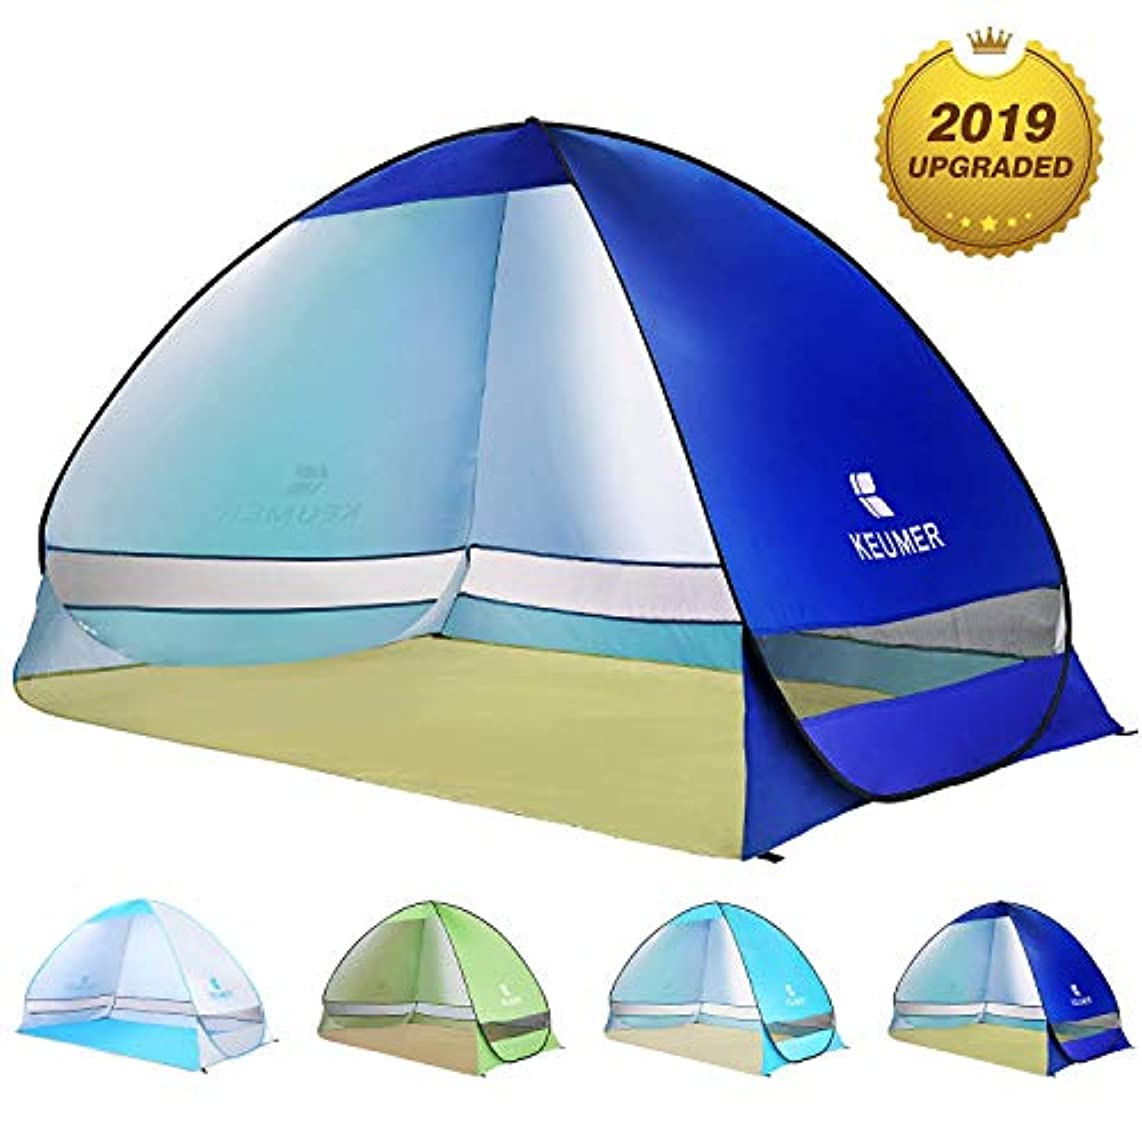 ピーブ行方不明優しさBATTOP Pop Up Beach Tent(テント) Sun Shelter Cabana Anti UV Beach Shelter for 2-3 Person Outdoor Sets up in Seconds(Darkblue) [並行輸入品]